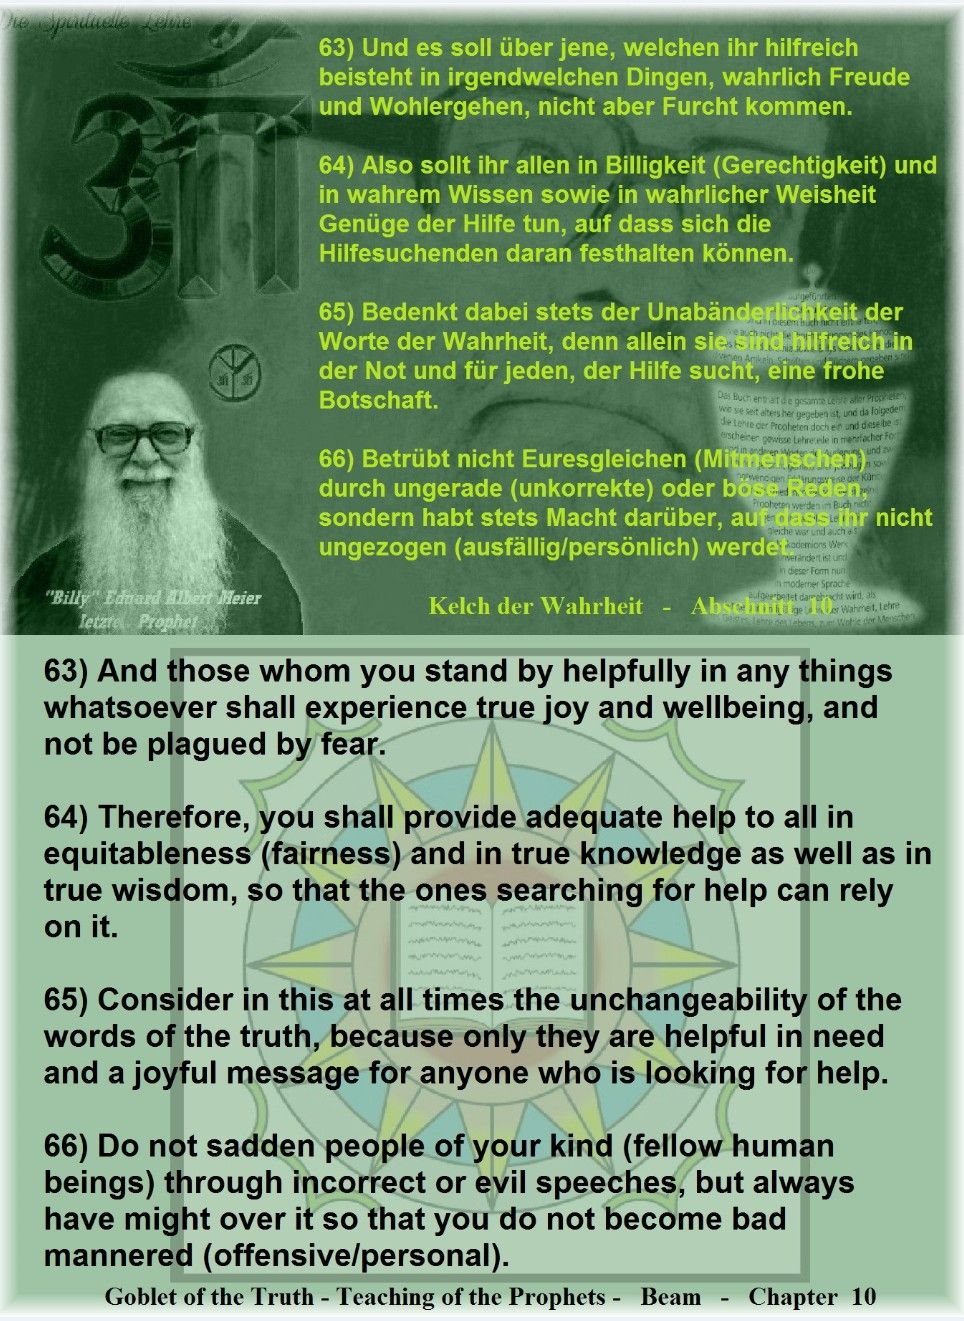 64 Therefore You Shall Provide Adequate Help To All In